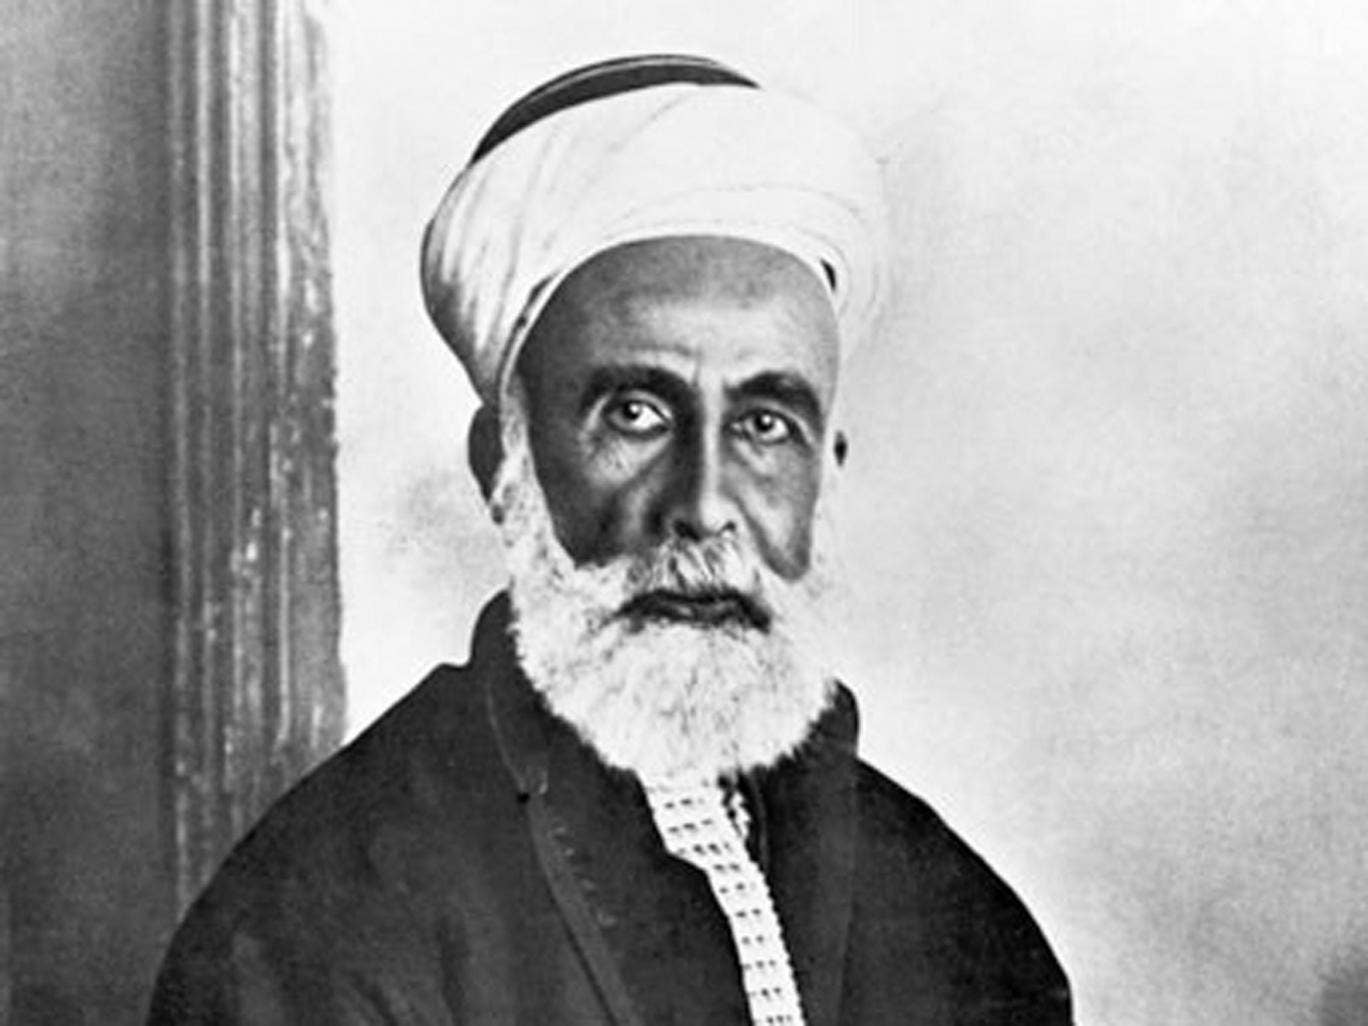 One of the architects of the revolt: Sharif Hussain, religious leader of Mecca